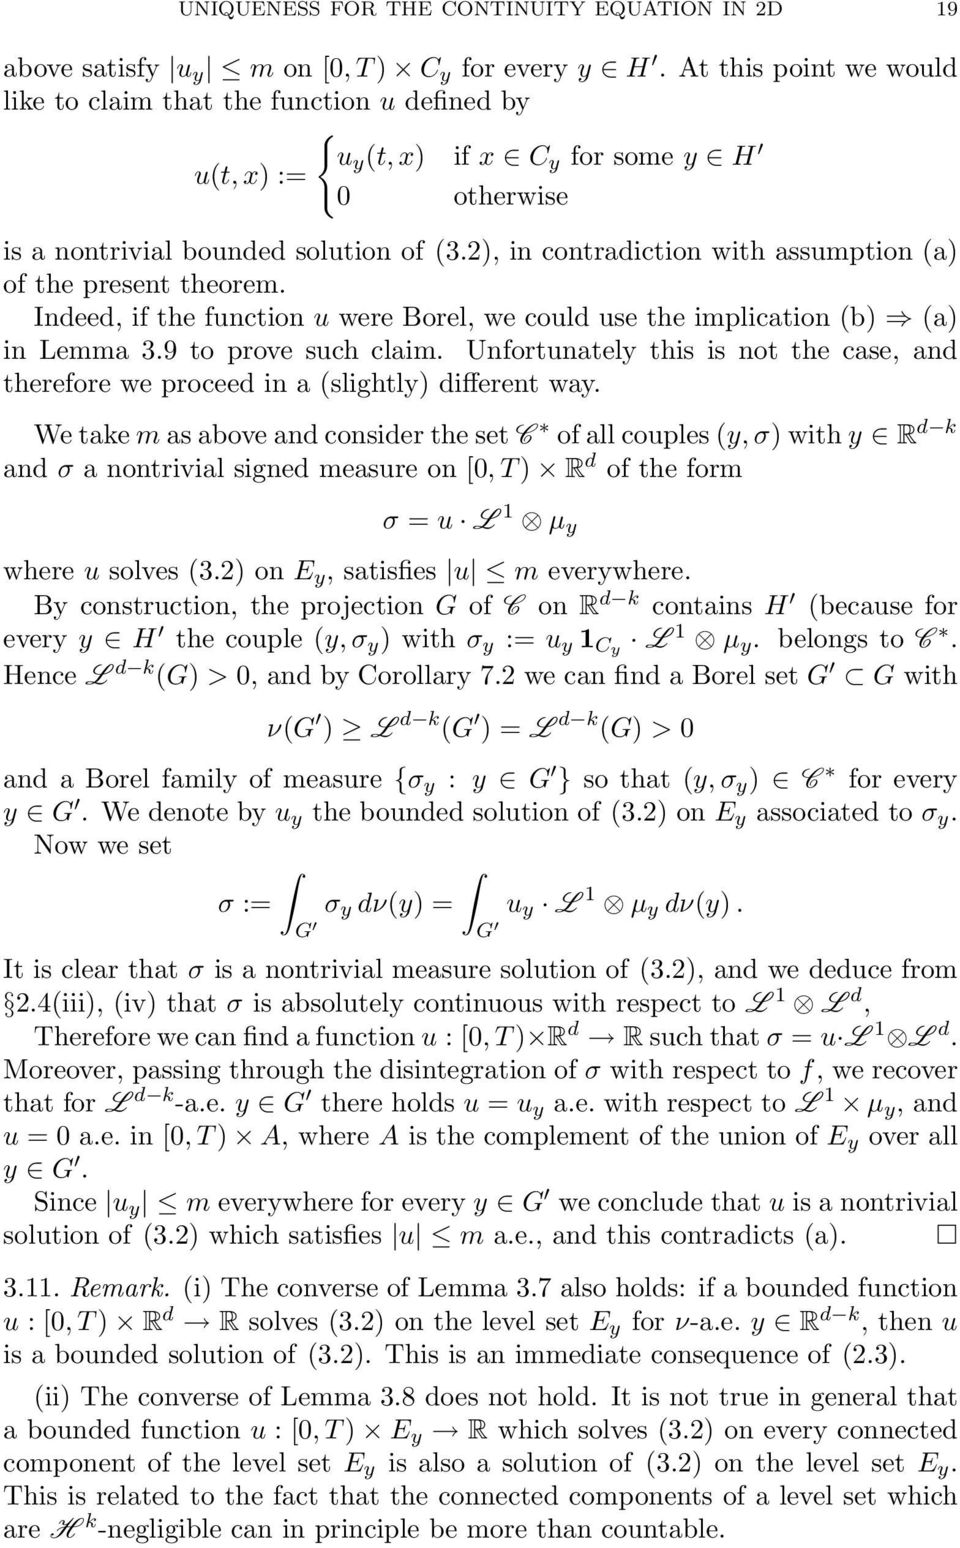 2), in contradiction with assumption a) of the present theorem. Indeed, if the function u were Borel, we could use the implication b) a) in Lemma 3.9 to prove such claim.